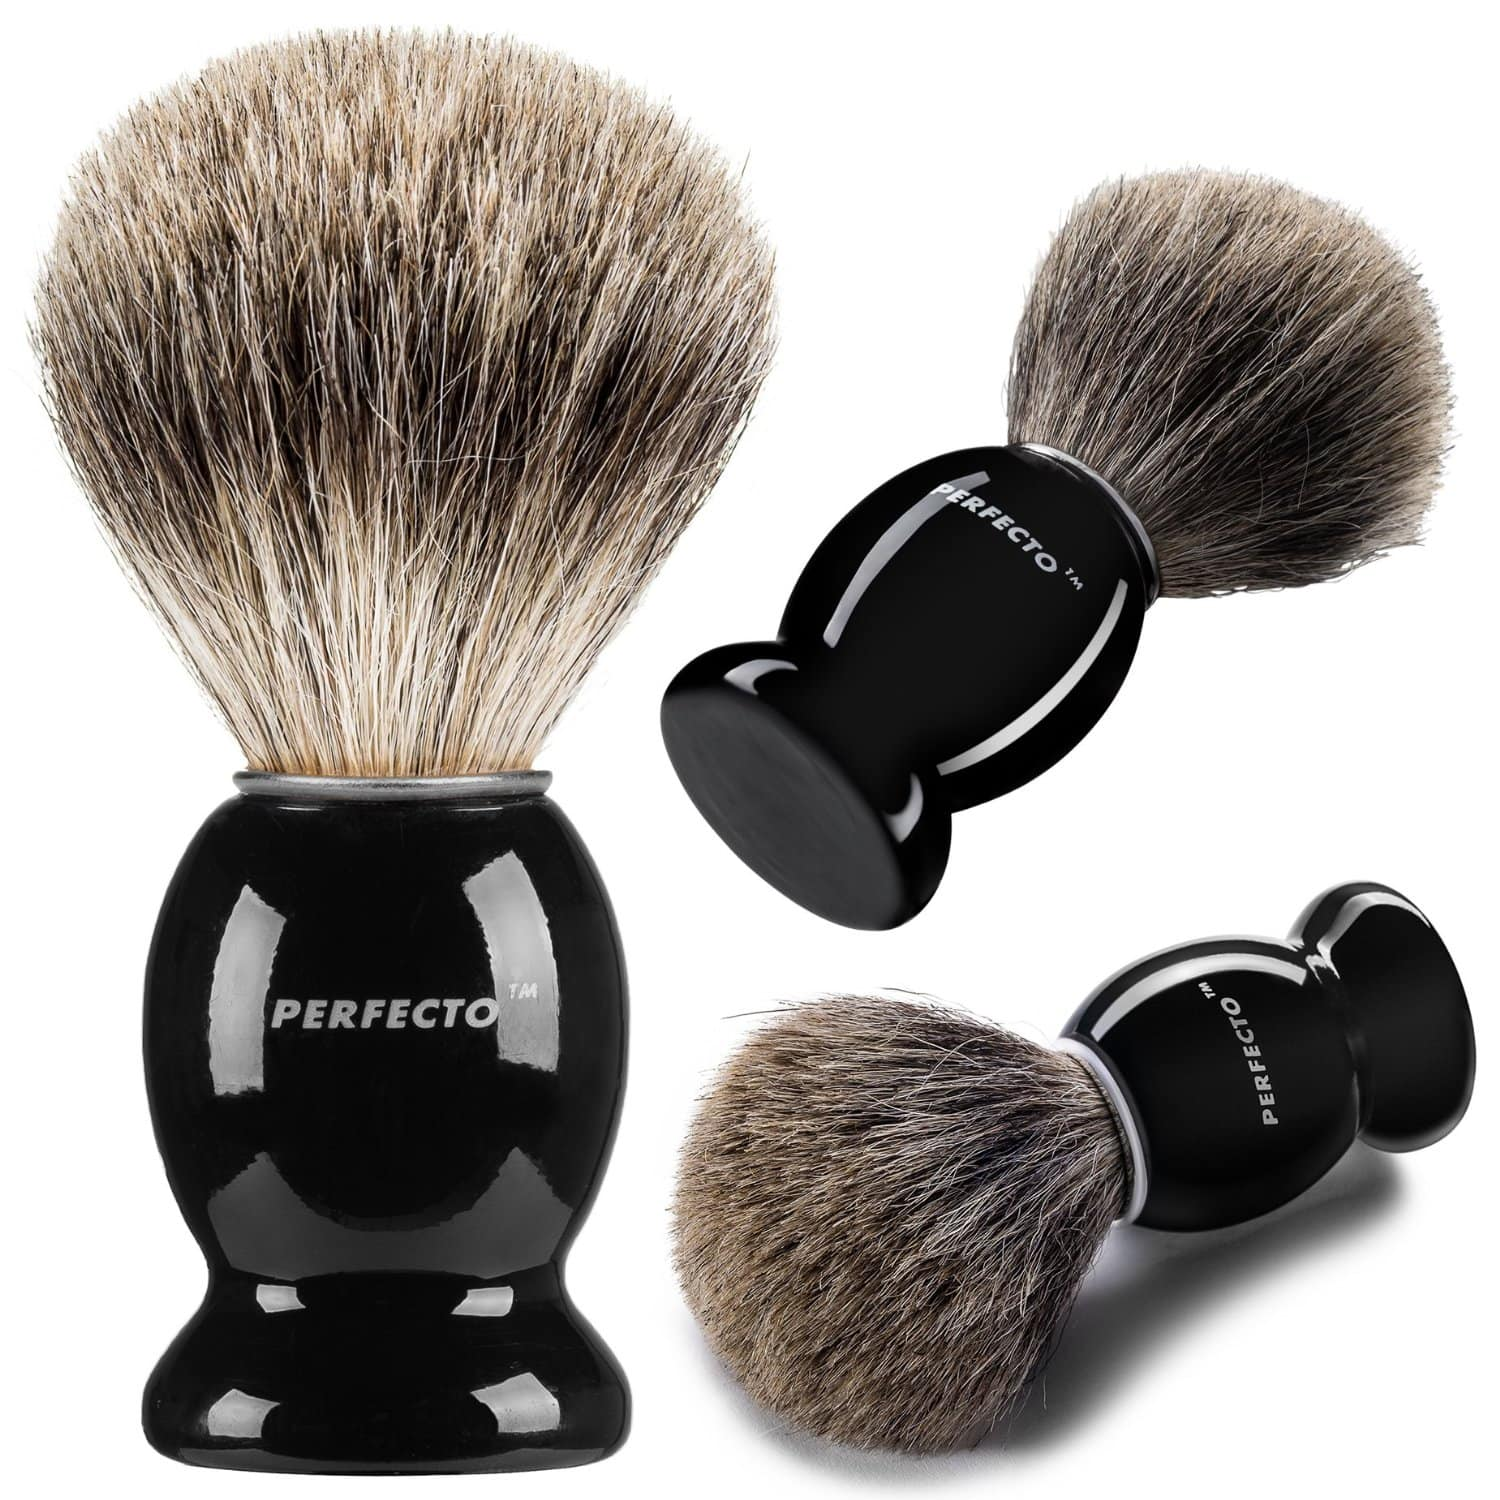 Amazon - Perfecto 100% Pure Badger Shaving Brush With Black Handle-Engineered- Final Price AC with Prime - $8.95